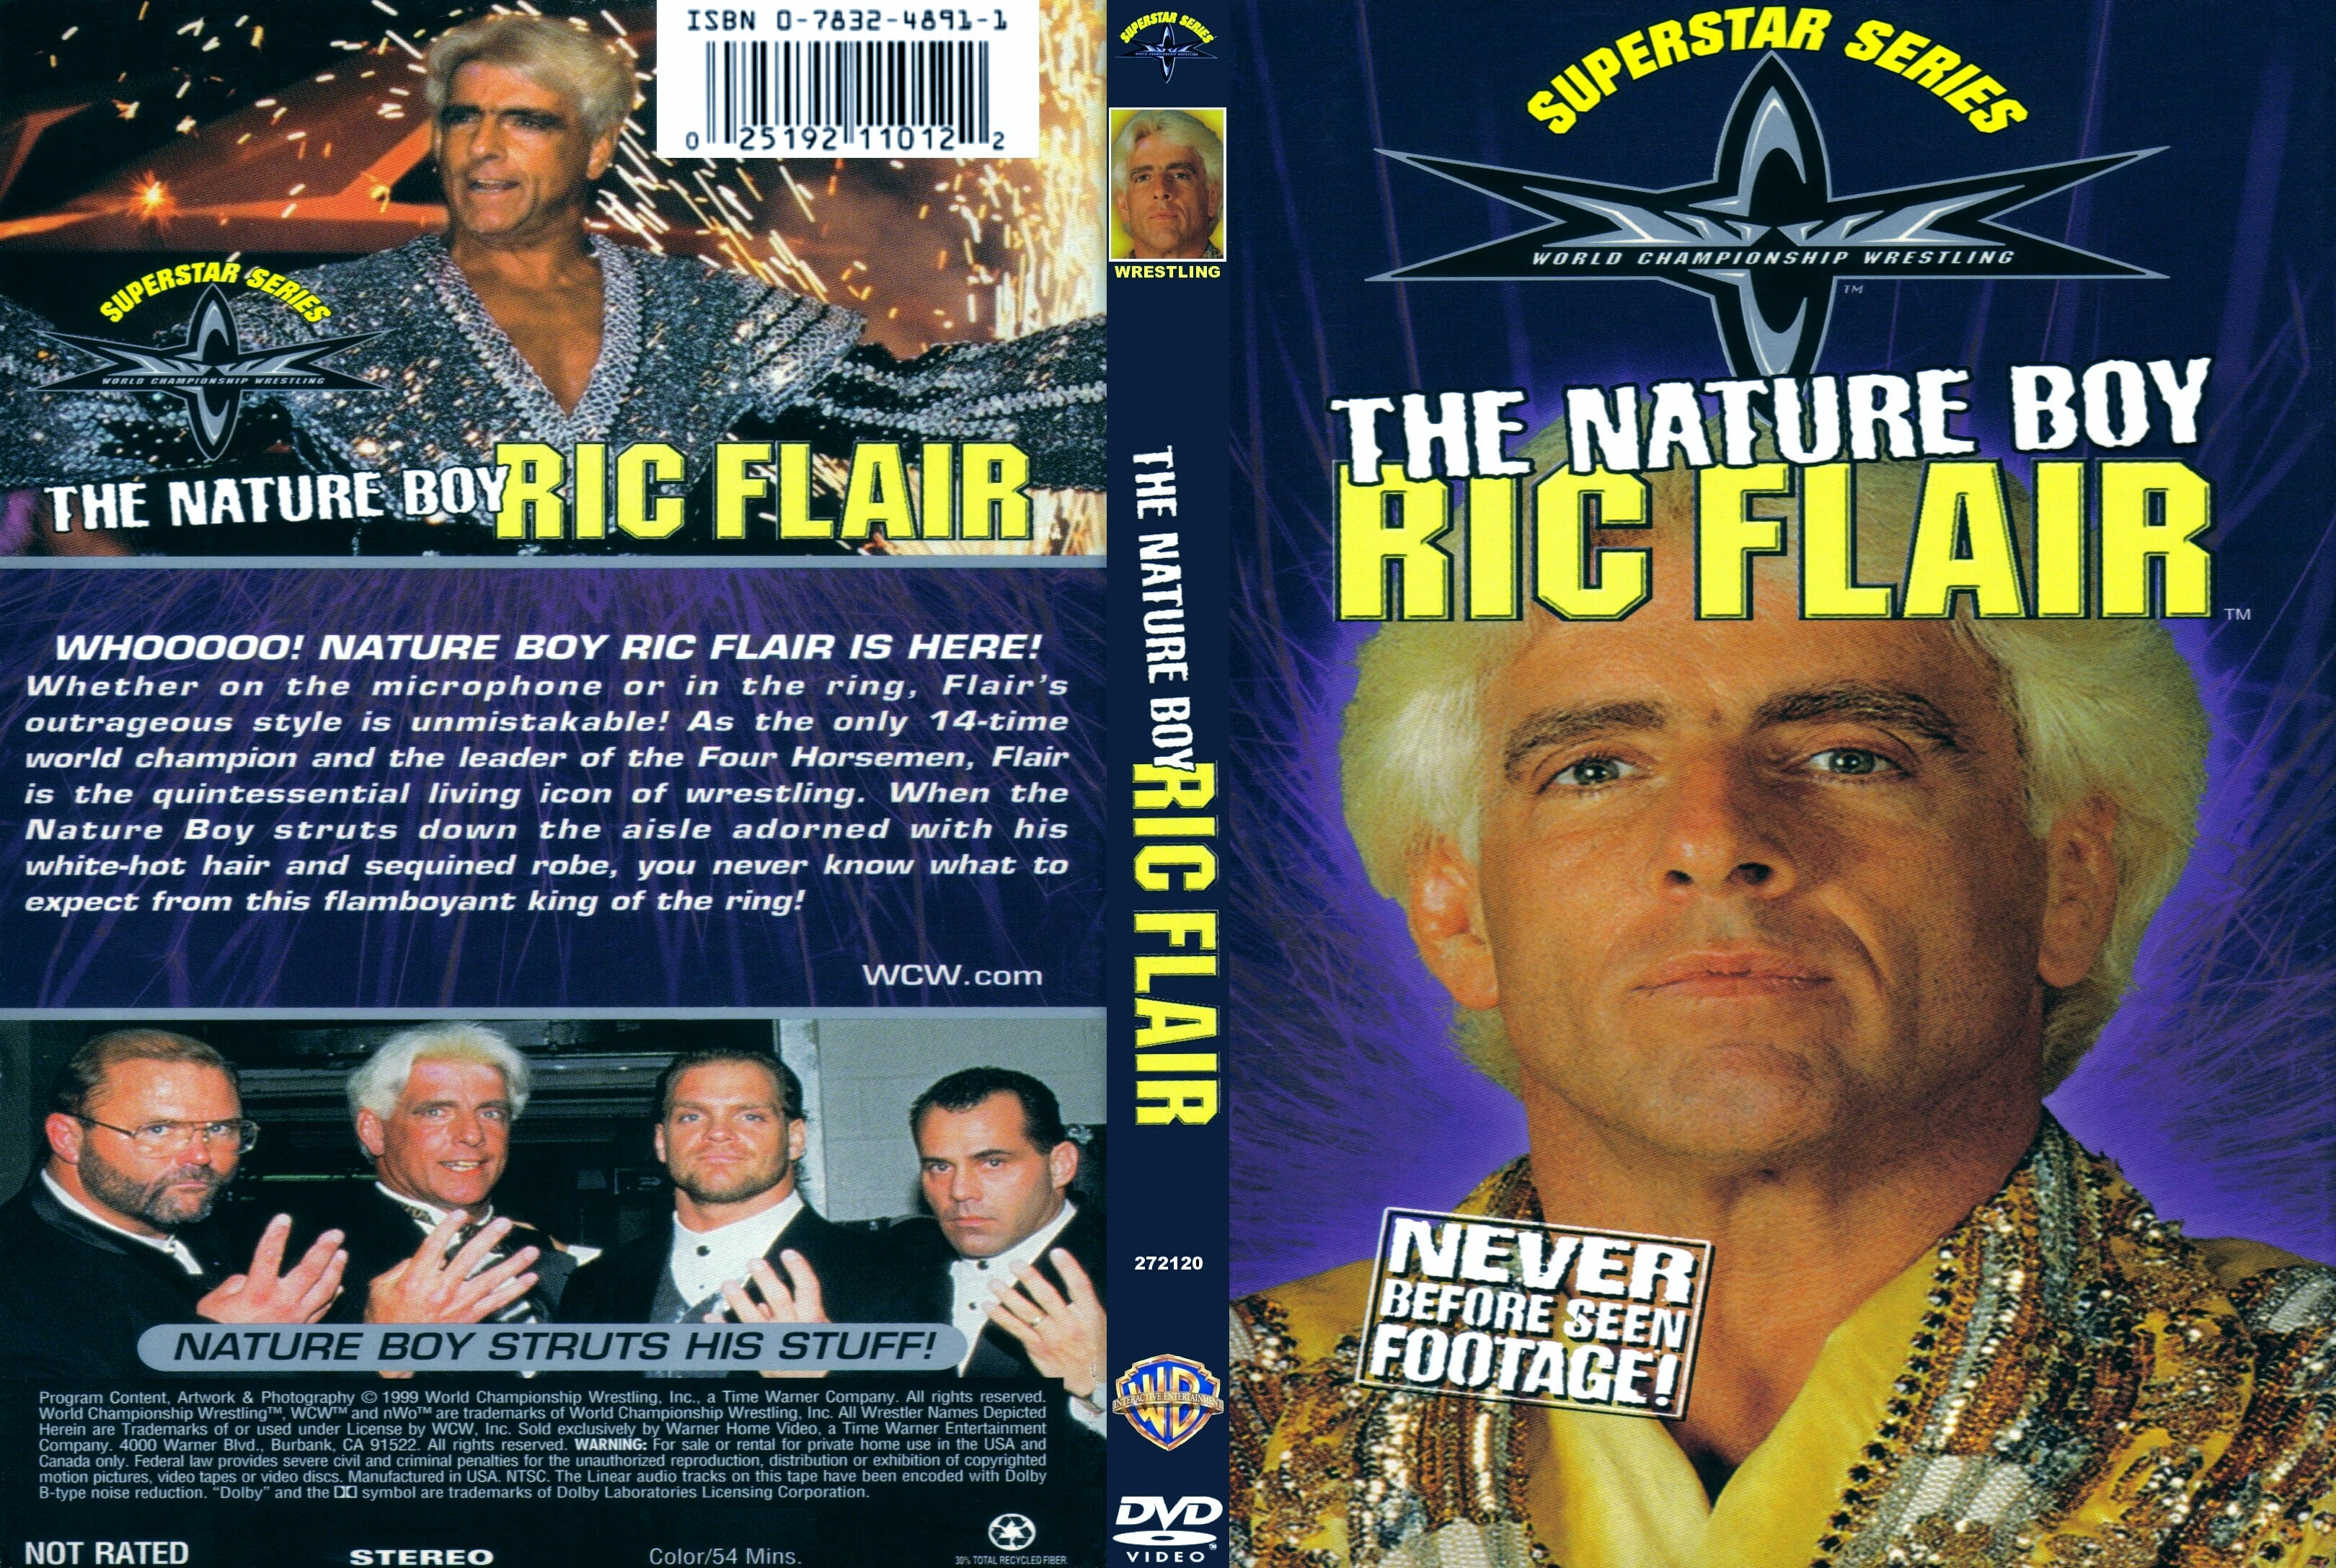 thenatureboyricflaircovpf3